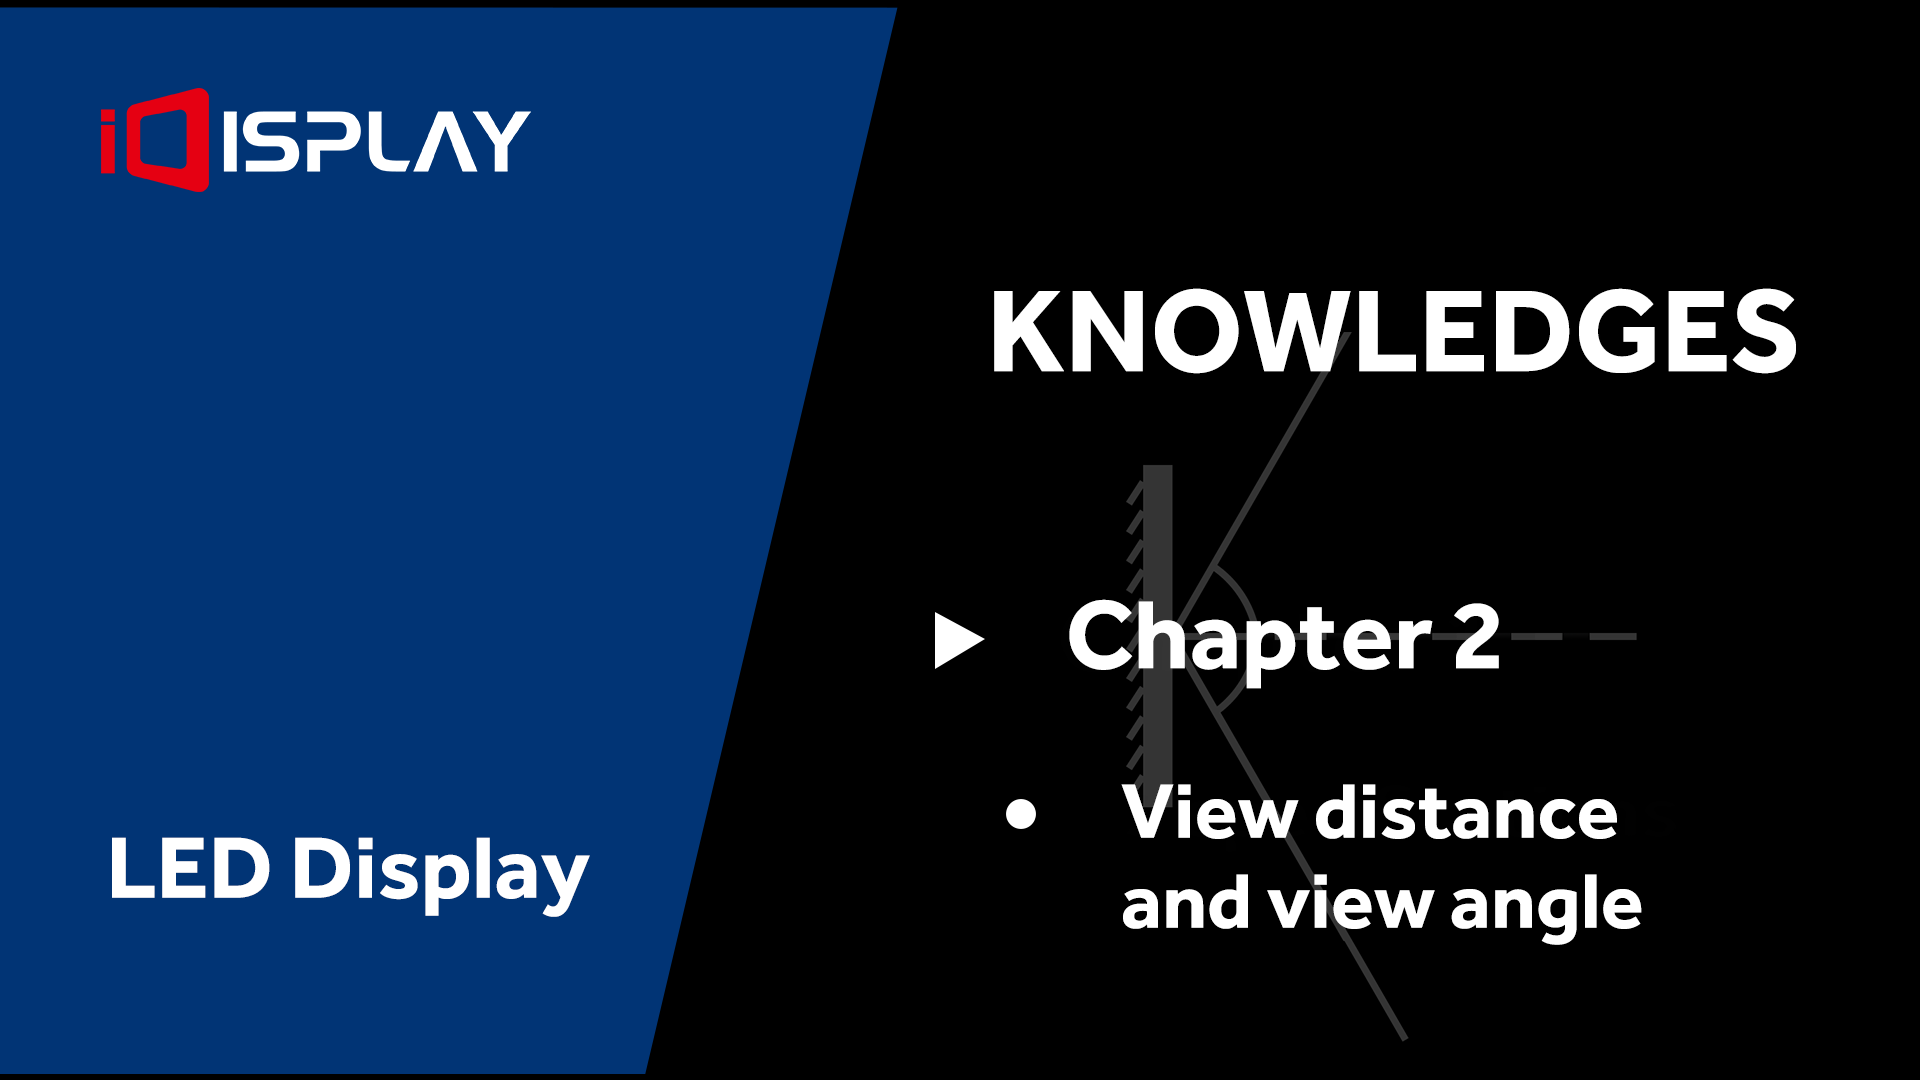 Led display basic knowledge - Chapter 2 view distance and view angle idisplayled